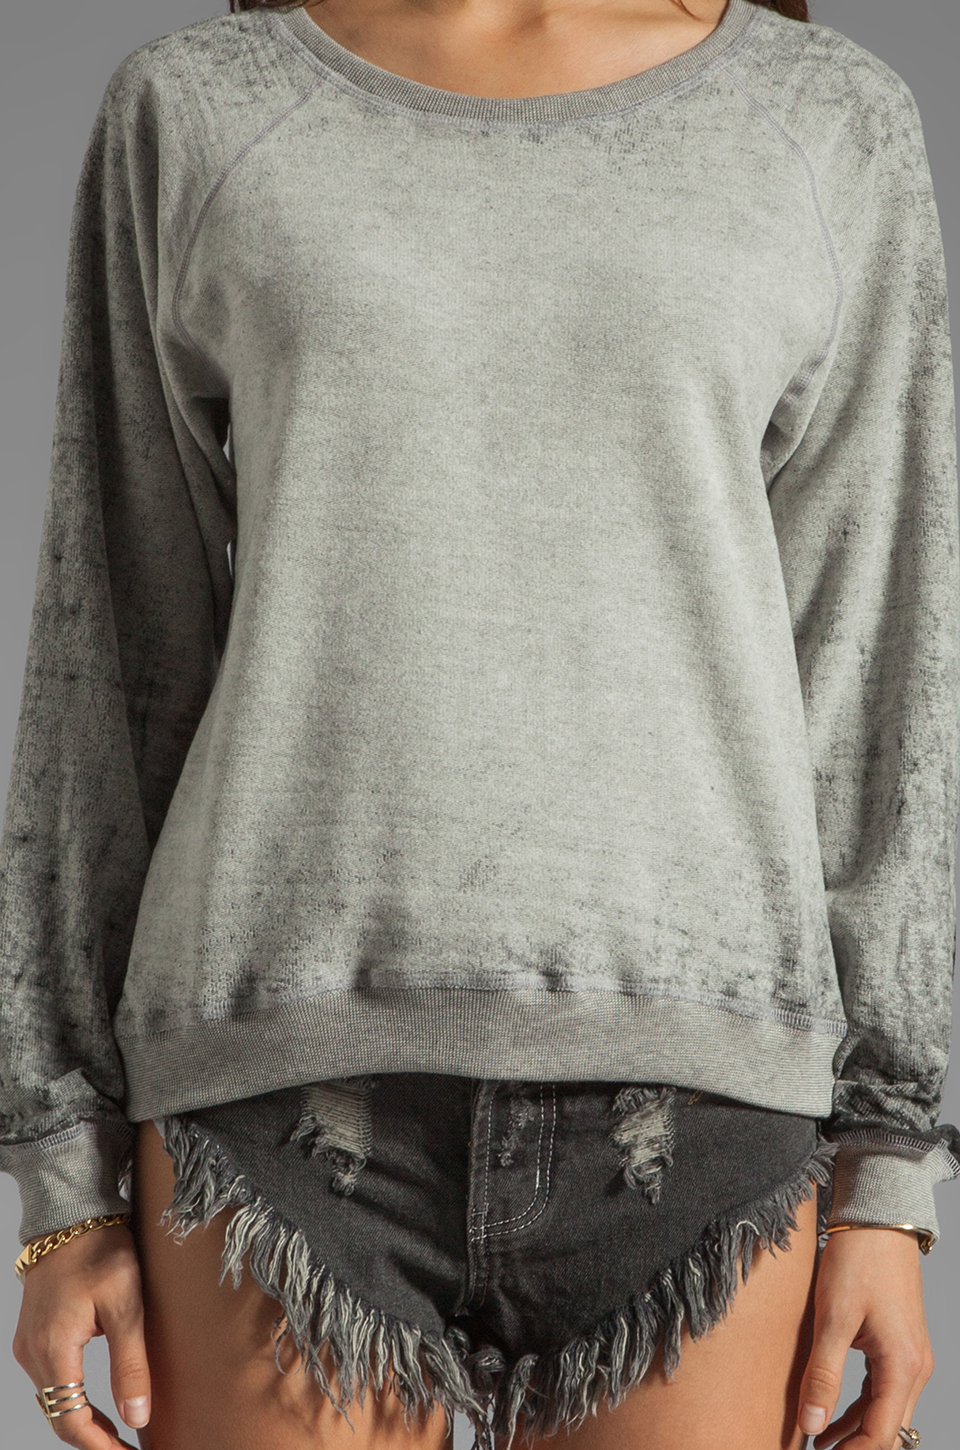 MONROW Vintage Sweatshirt in Heather